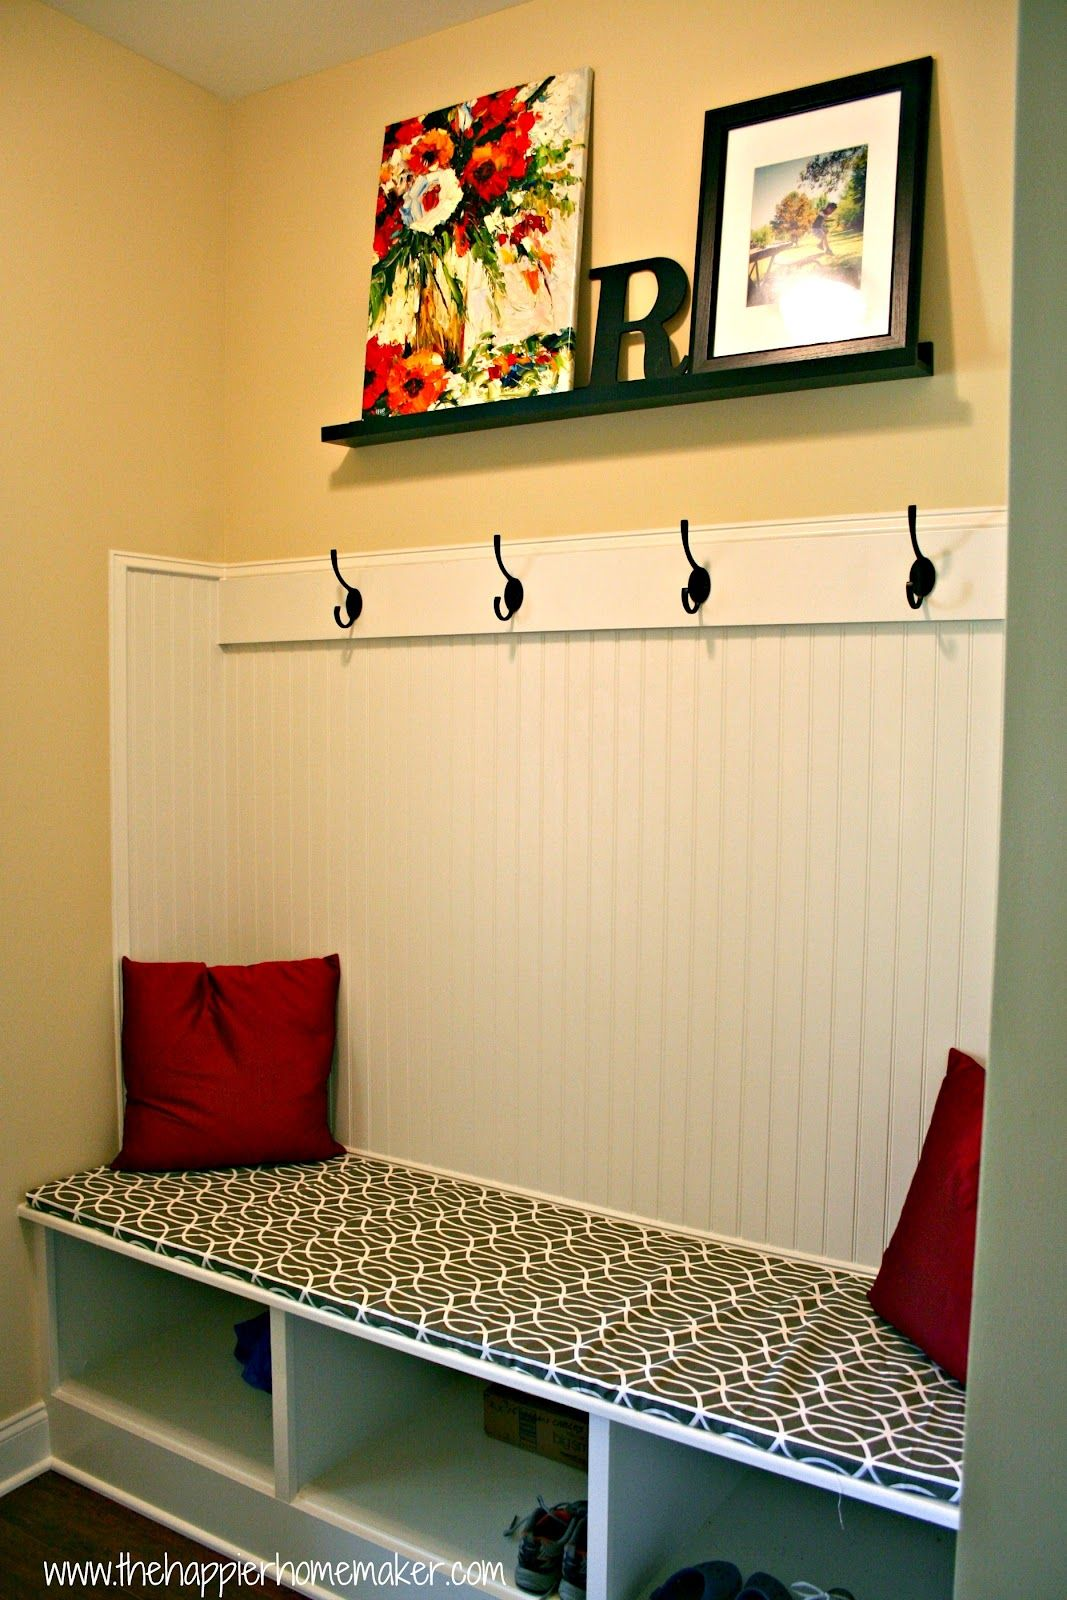 Fast Diy No Sew Bench Cushion Without Plywood The Happier